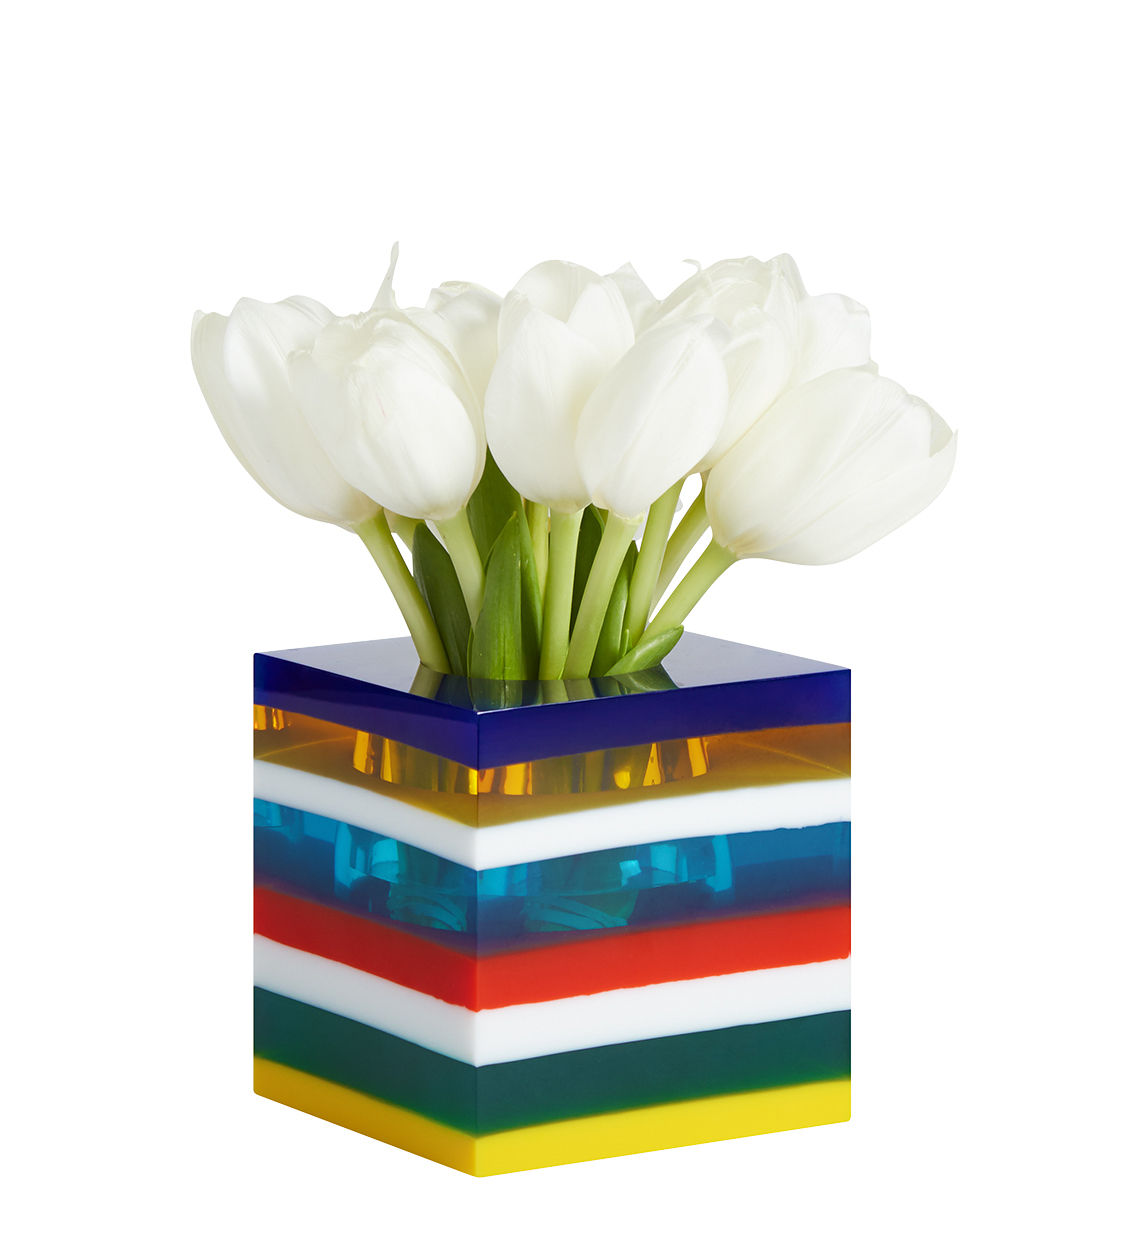 Decoration - Vases - Stacked Bel Air Vase - / Hand-made by Jonathan Adler - Multicoloured - Acrylic